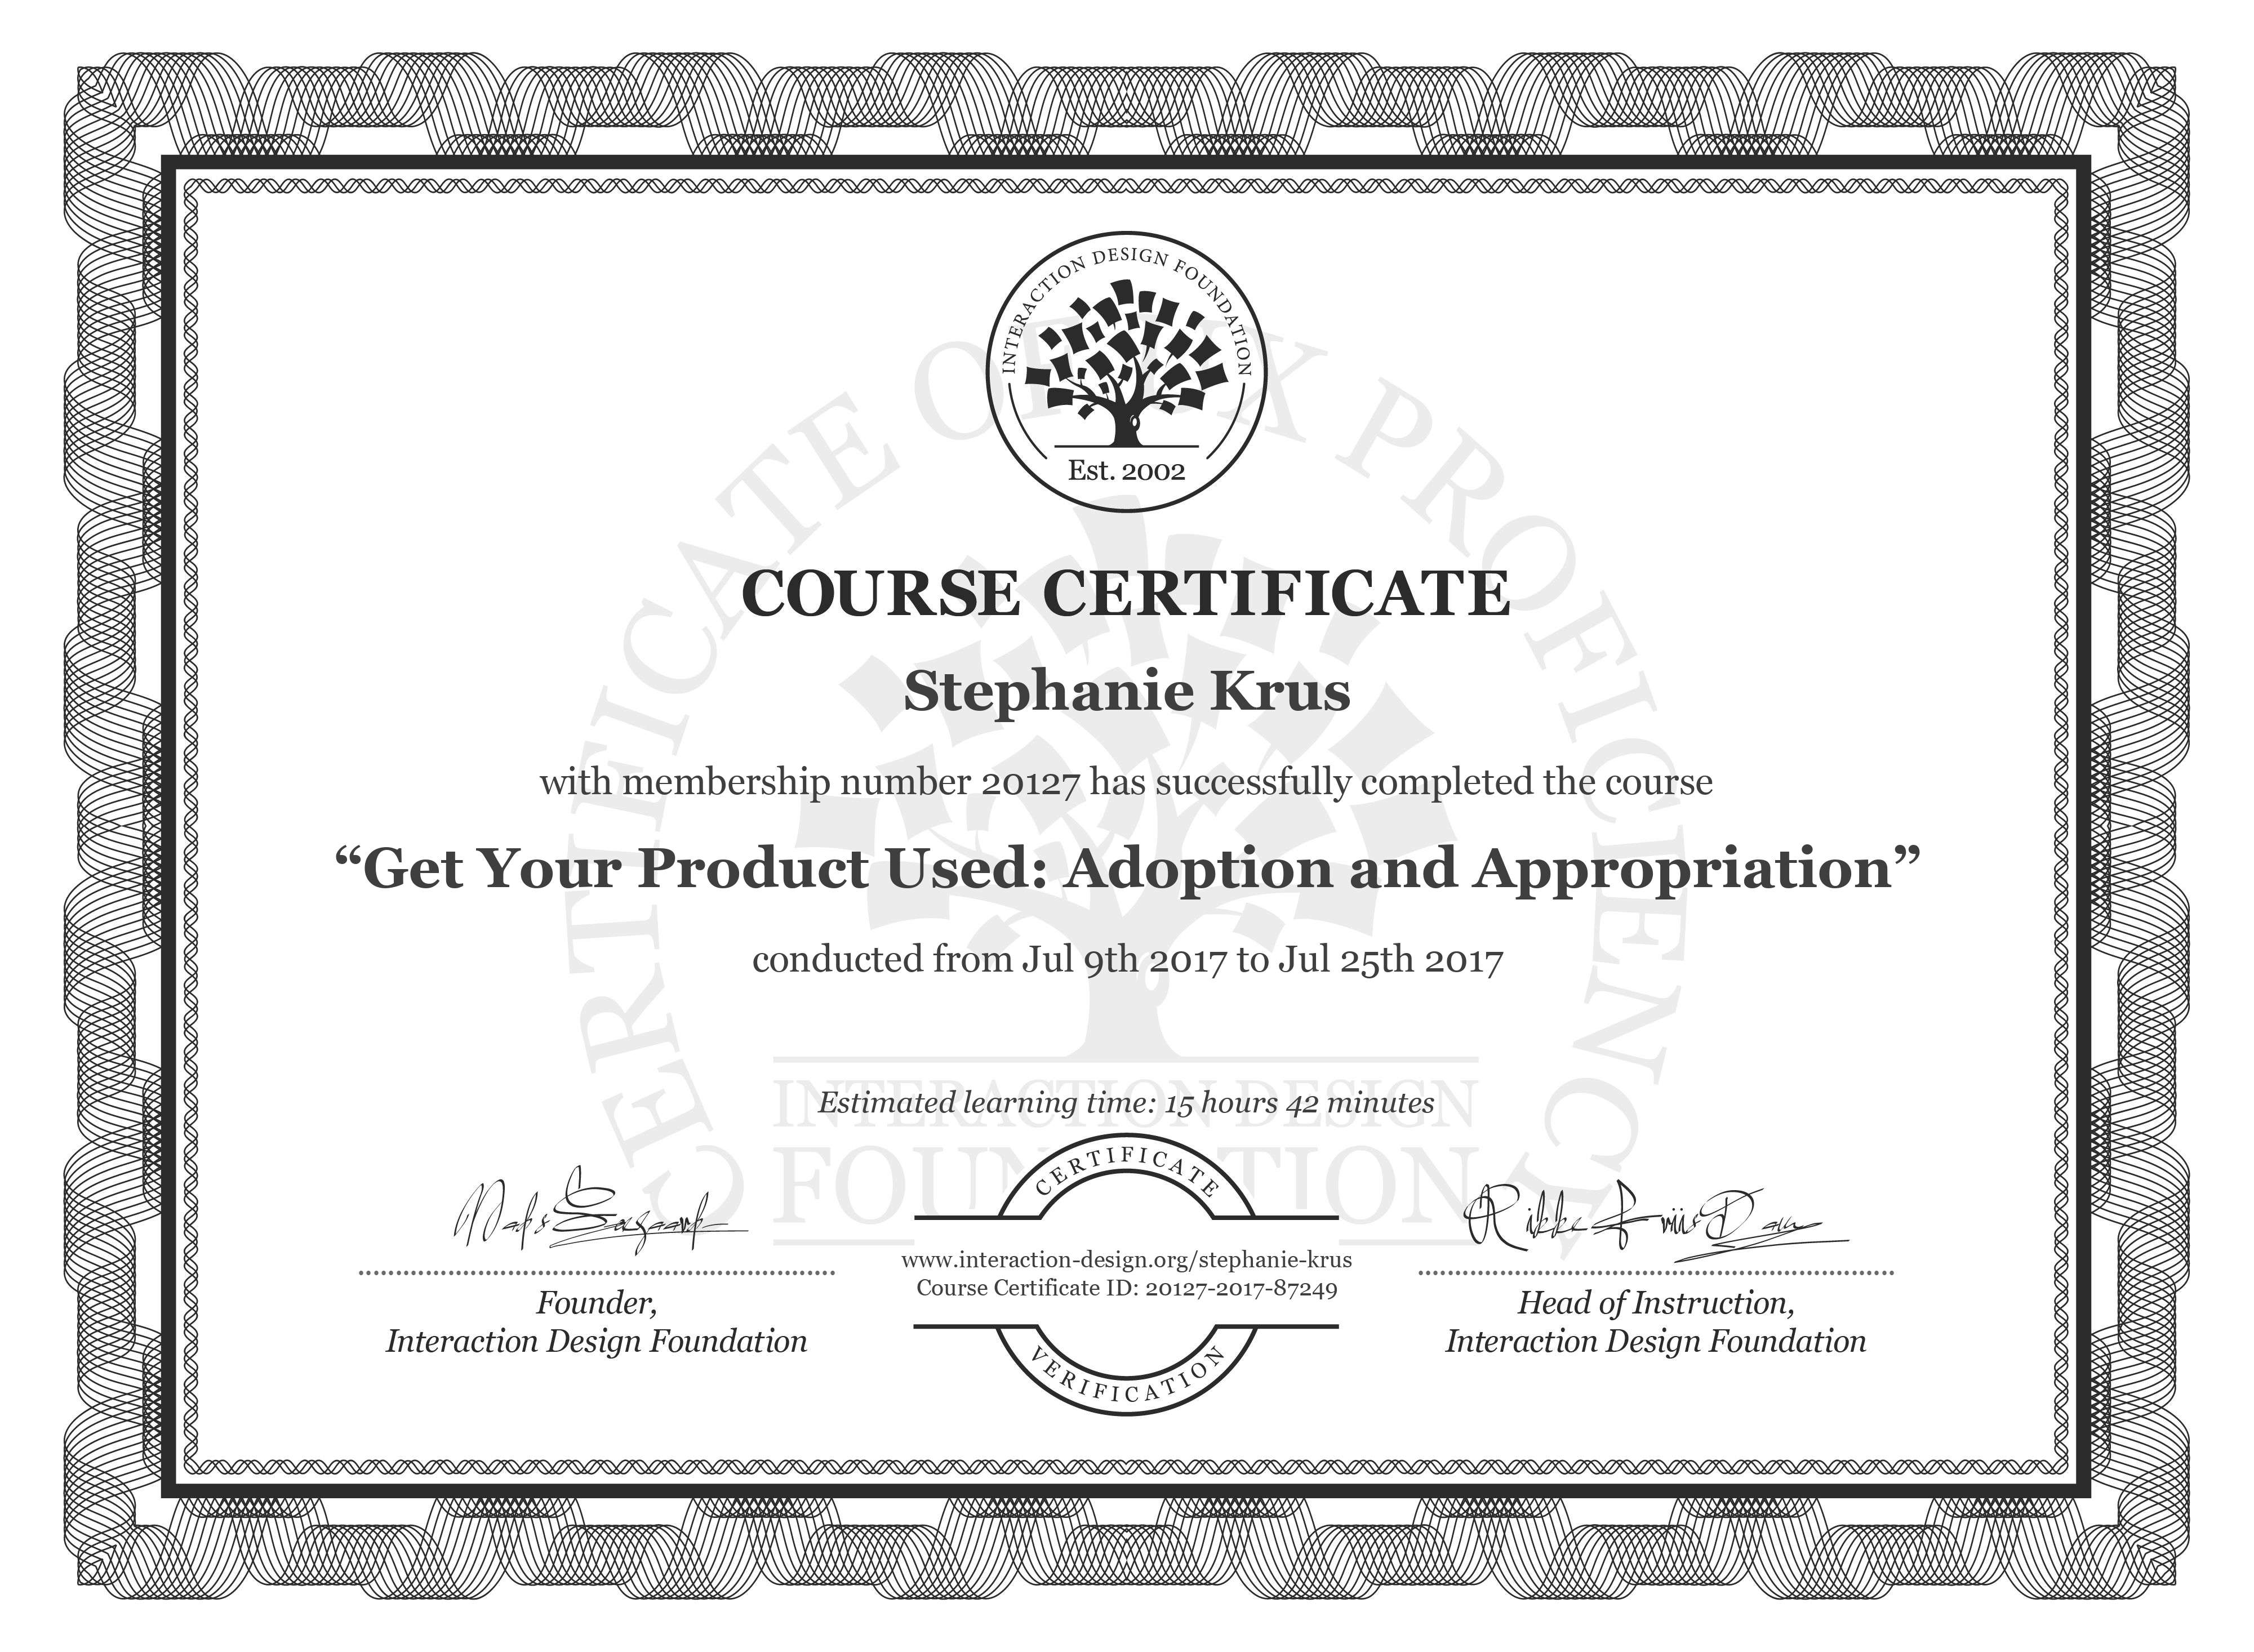 Stephanie Krus: Course Certificate - Get Your Product Used: Adoption and Appropriation